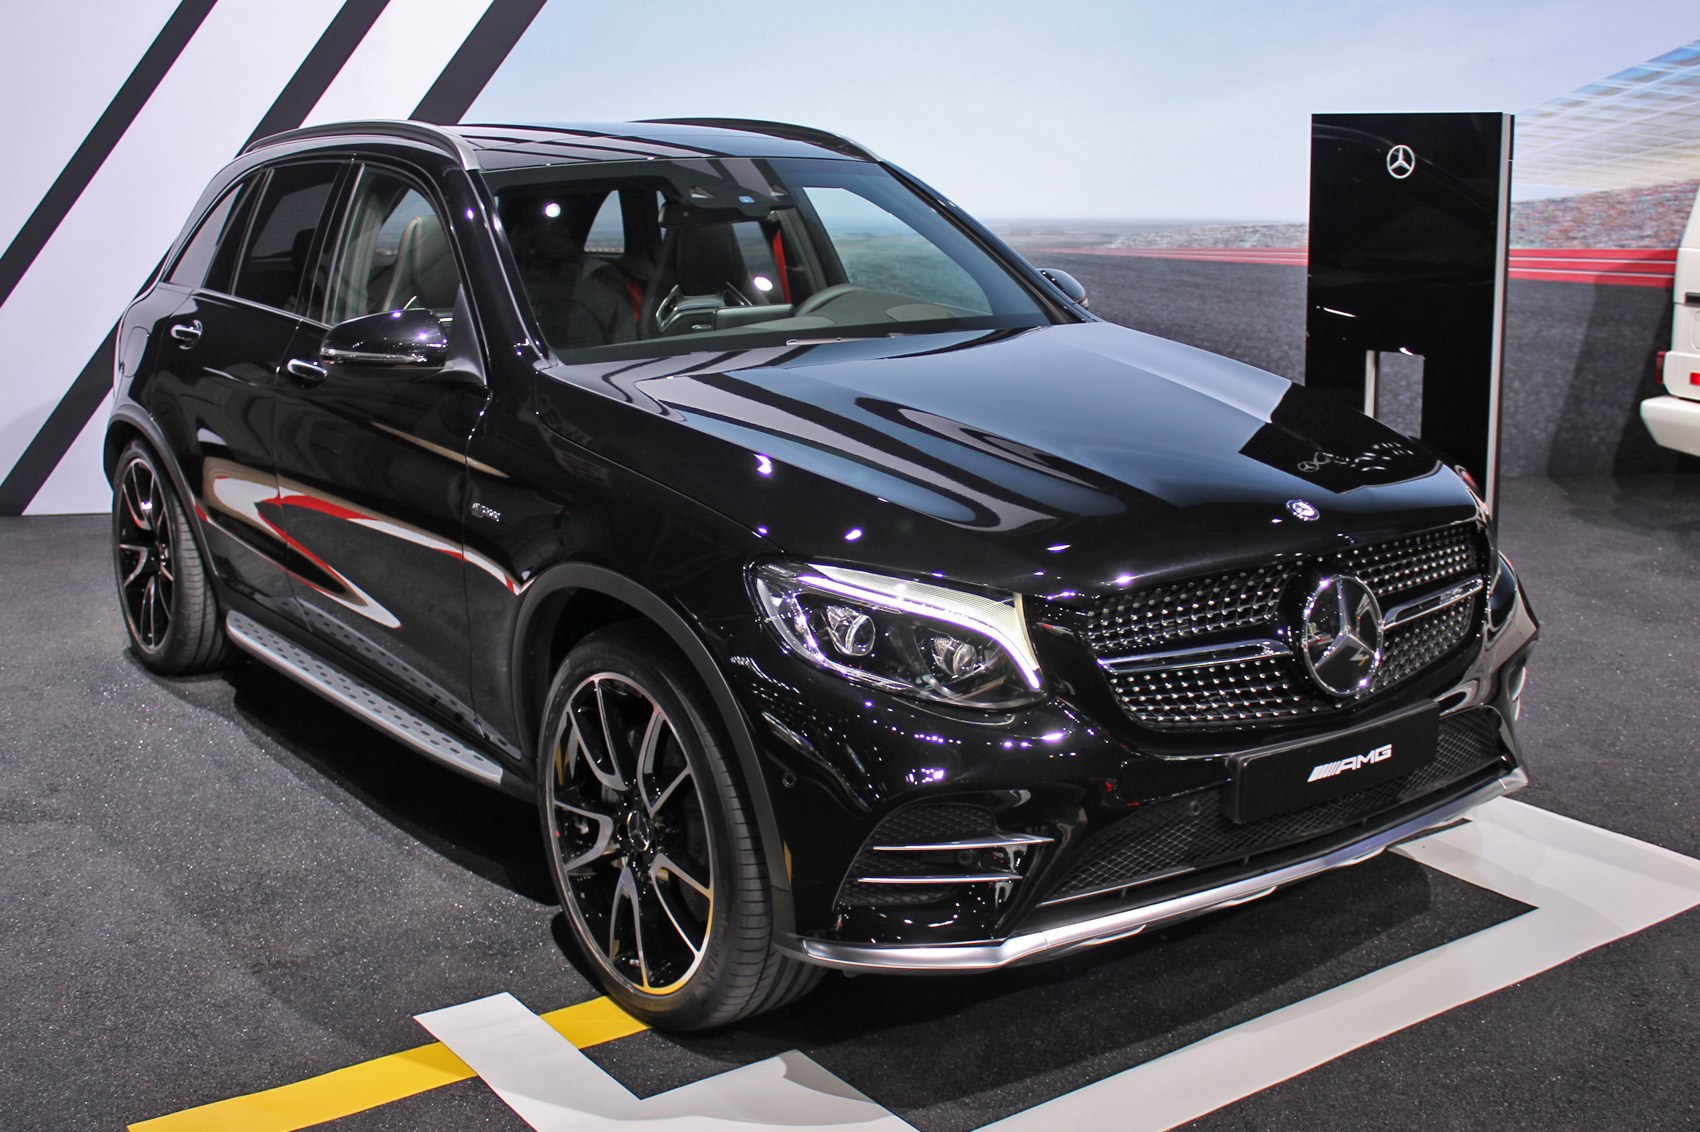 mercedes amg glc 43 4matic is here amg genes for all. Black Bedroom Furniture Sets. Home Design Ideas